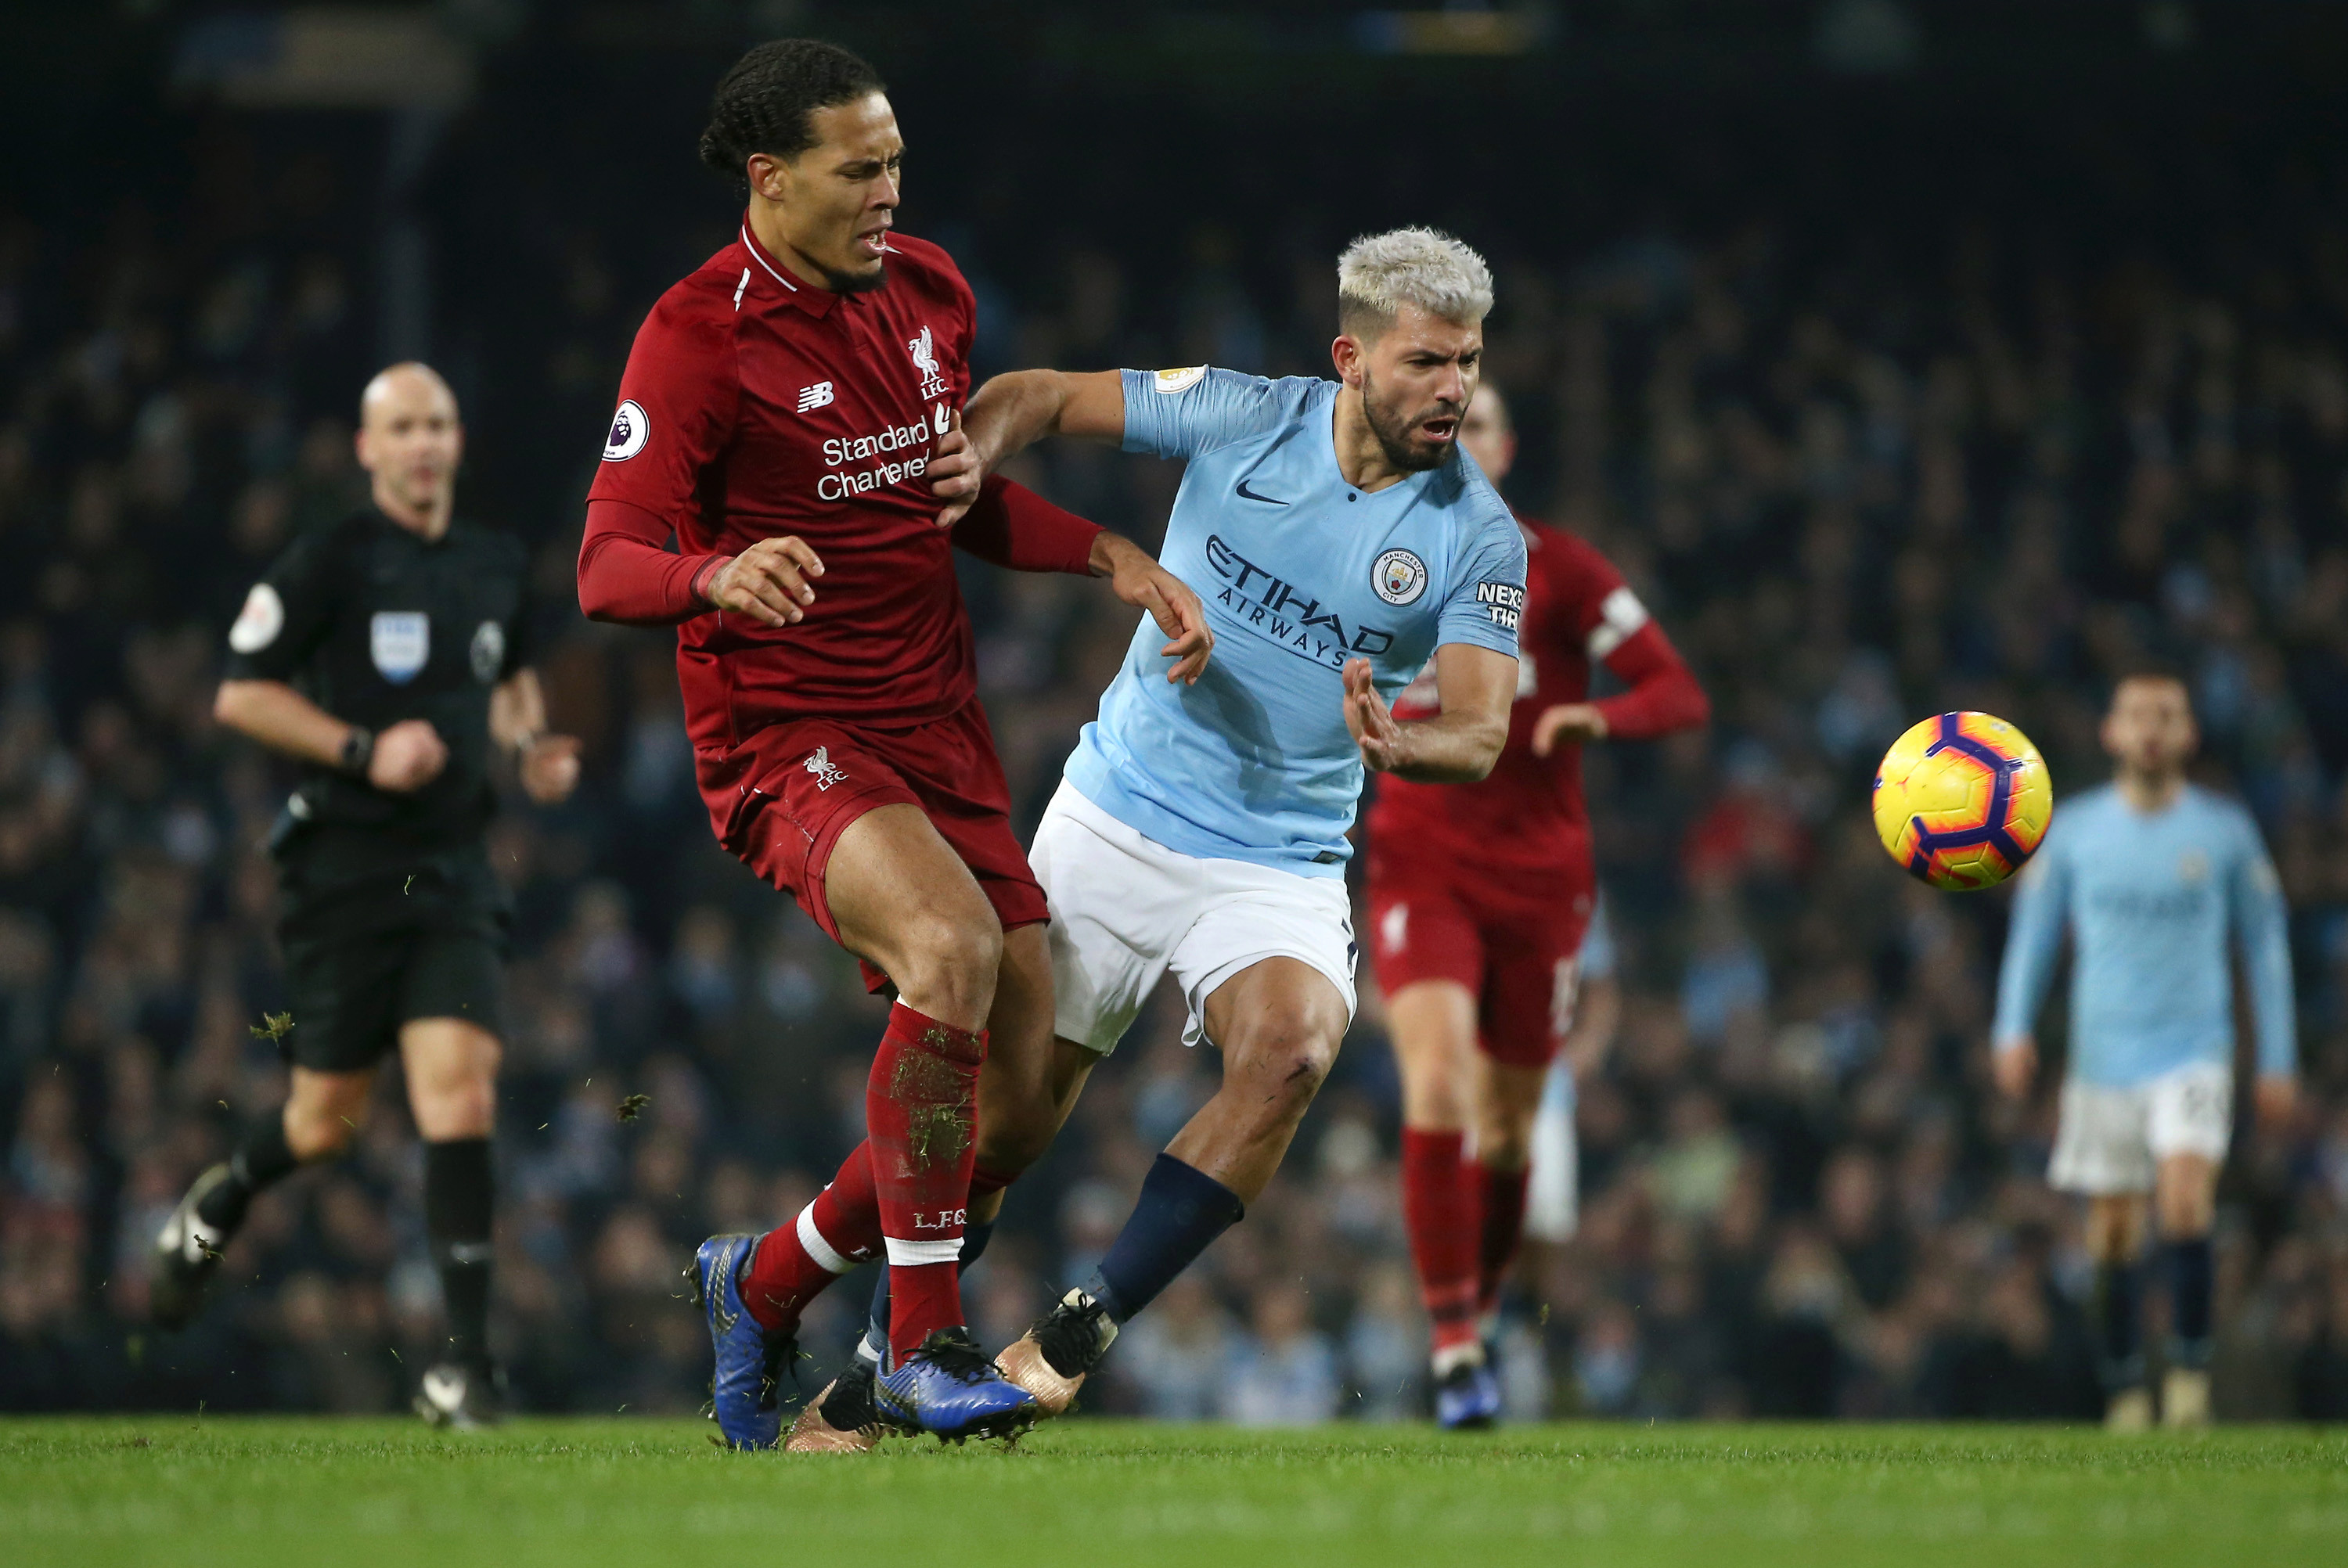 Révélation sur un arrangement secret : Liverpool a acheté le silence de Man City